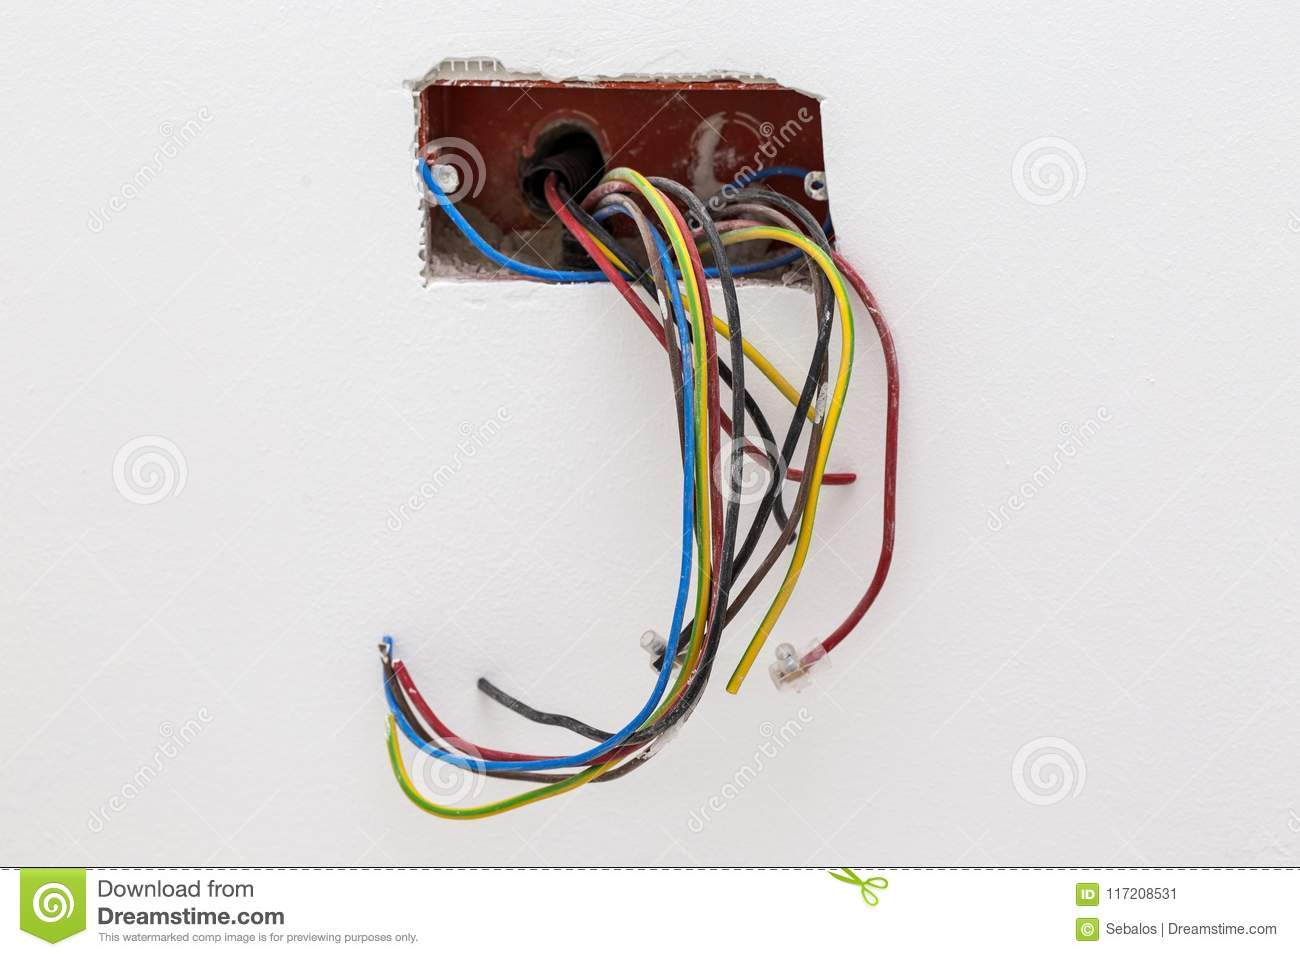 hight resolution of unfinished electrical mains outlet socket with electrical wires